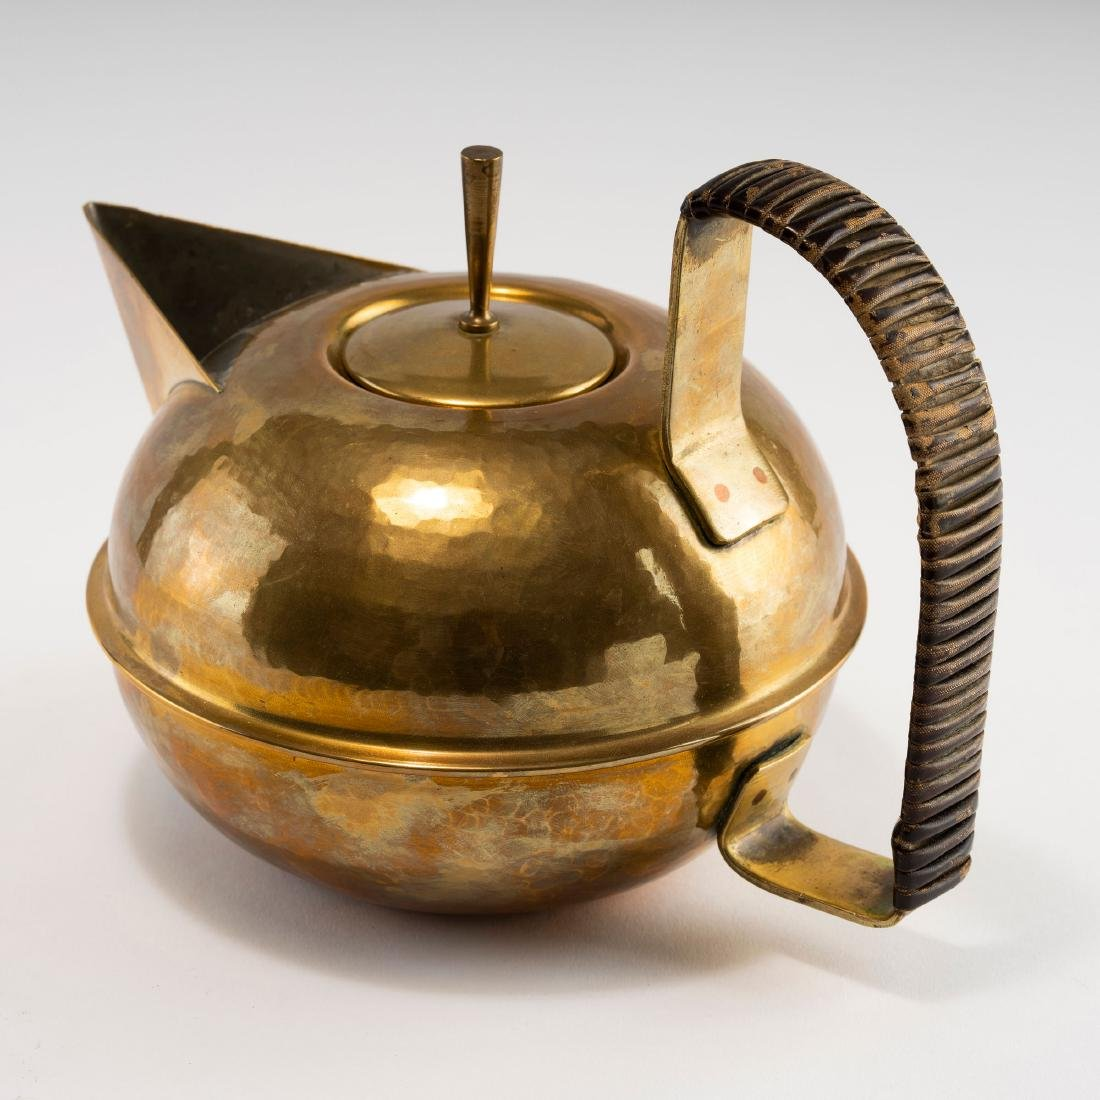 Teapot and tea caddy, c1930 - 2